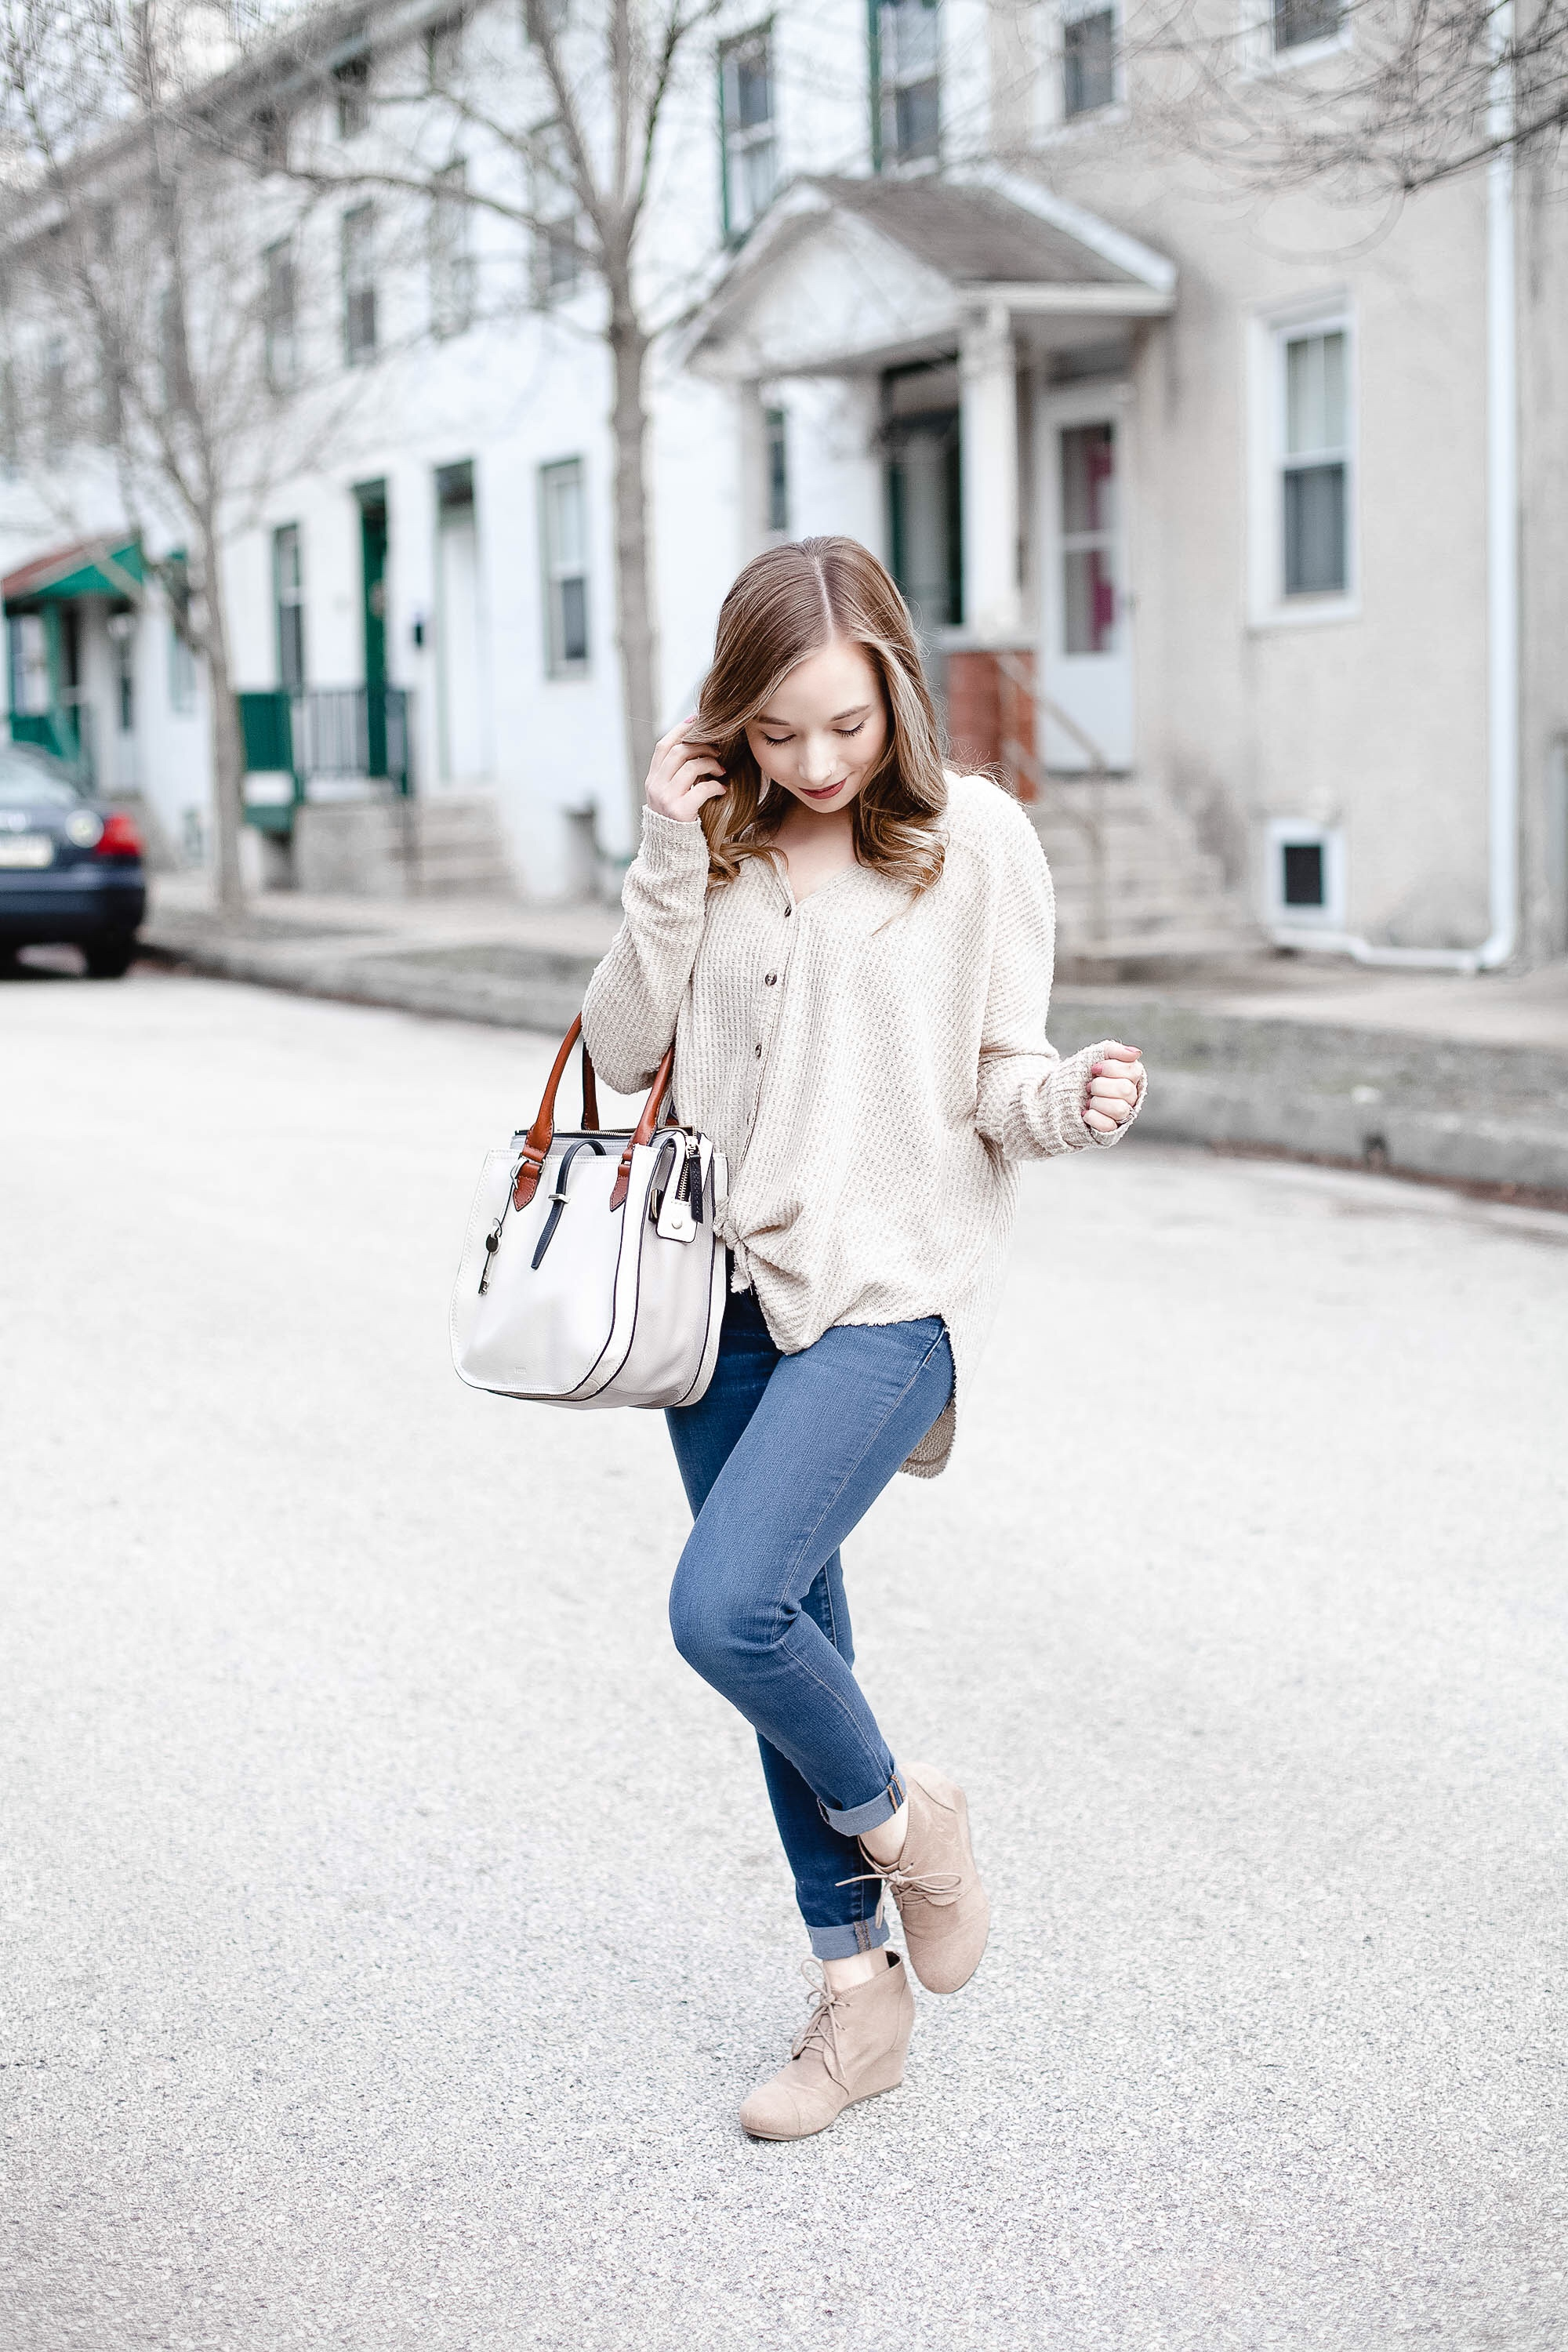 Oversized Thermal Top For Spring | Coffee With Summer